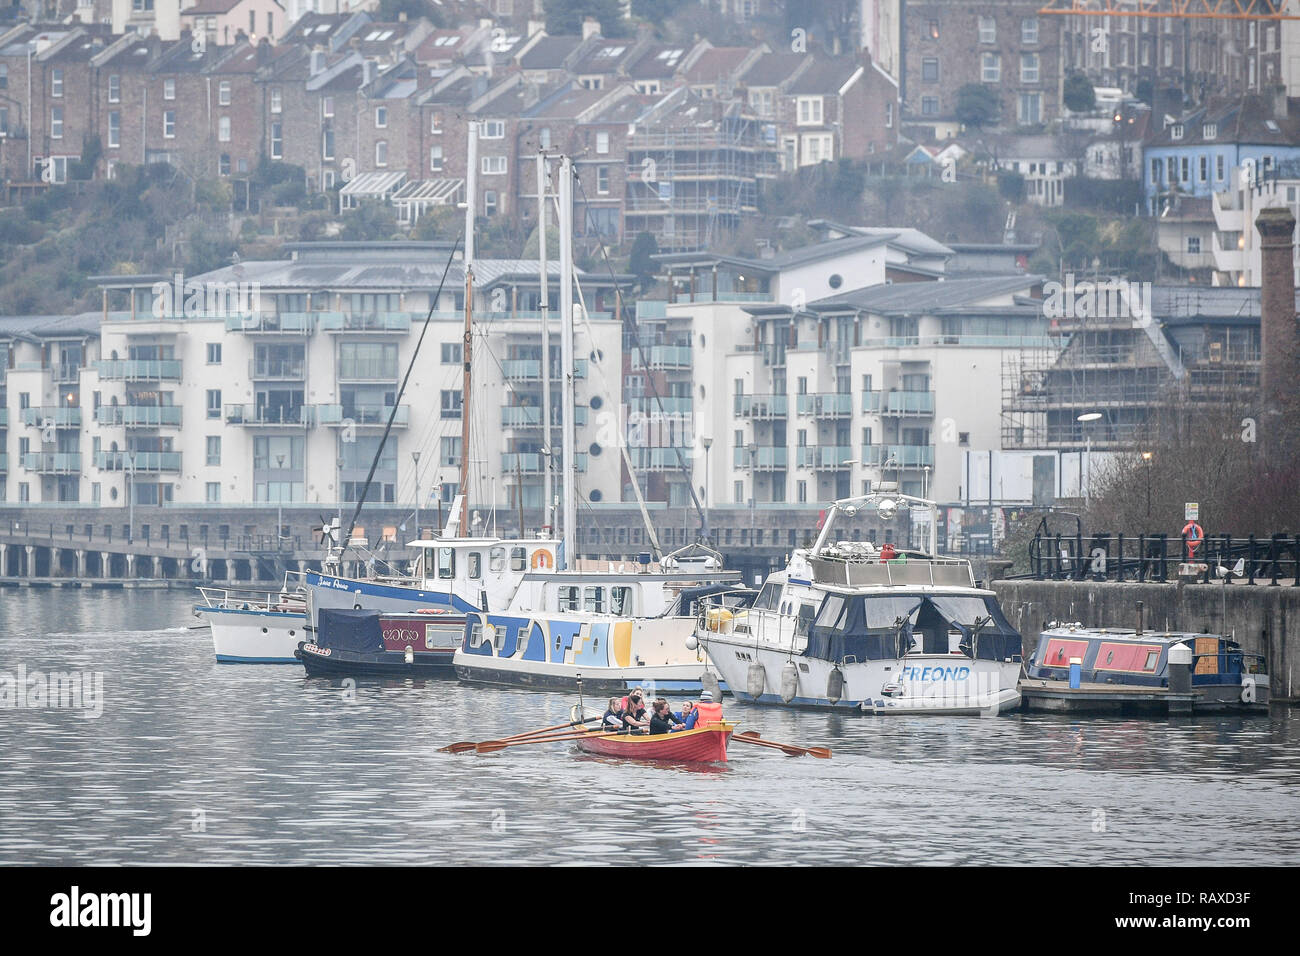 Rowers glide past boats moored on the Harbourside in Bristol, as temperatures drop across the UK. - Stock Image